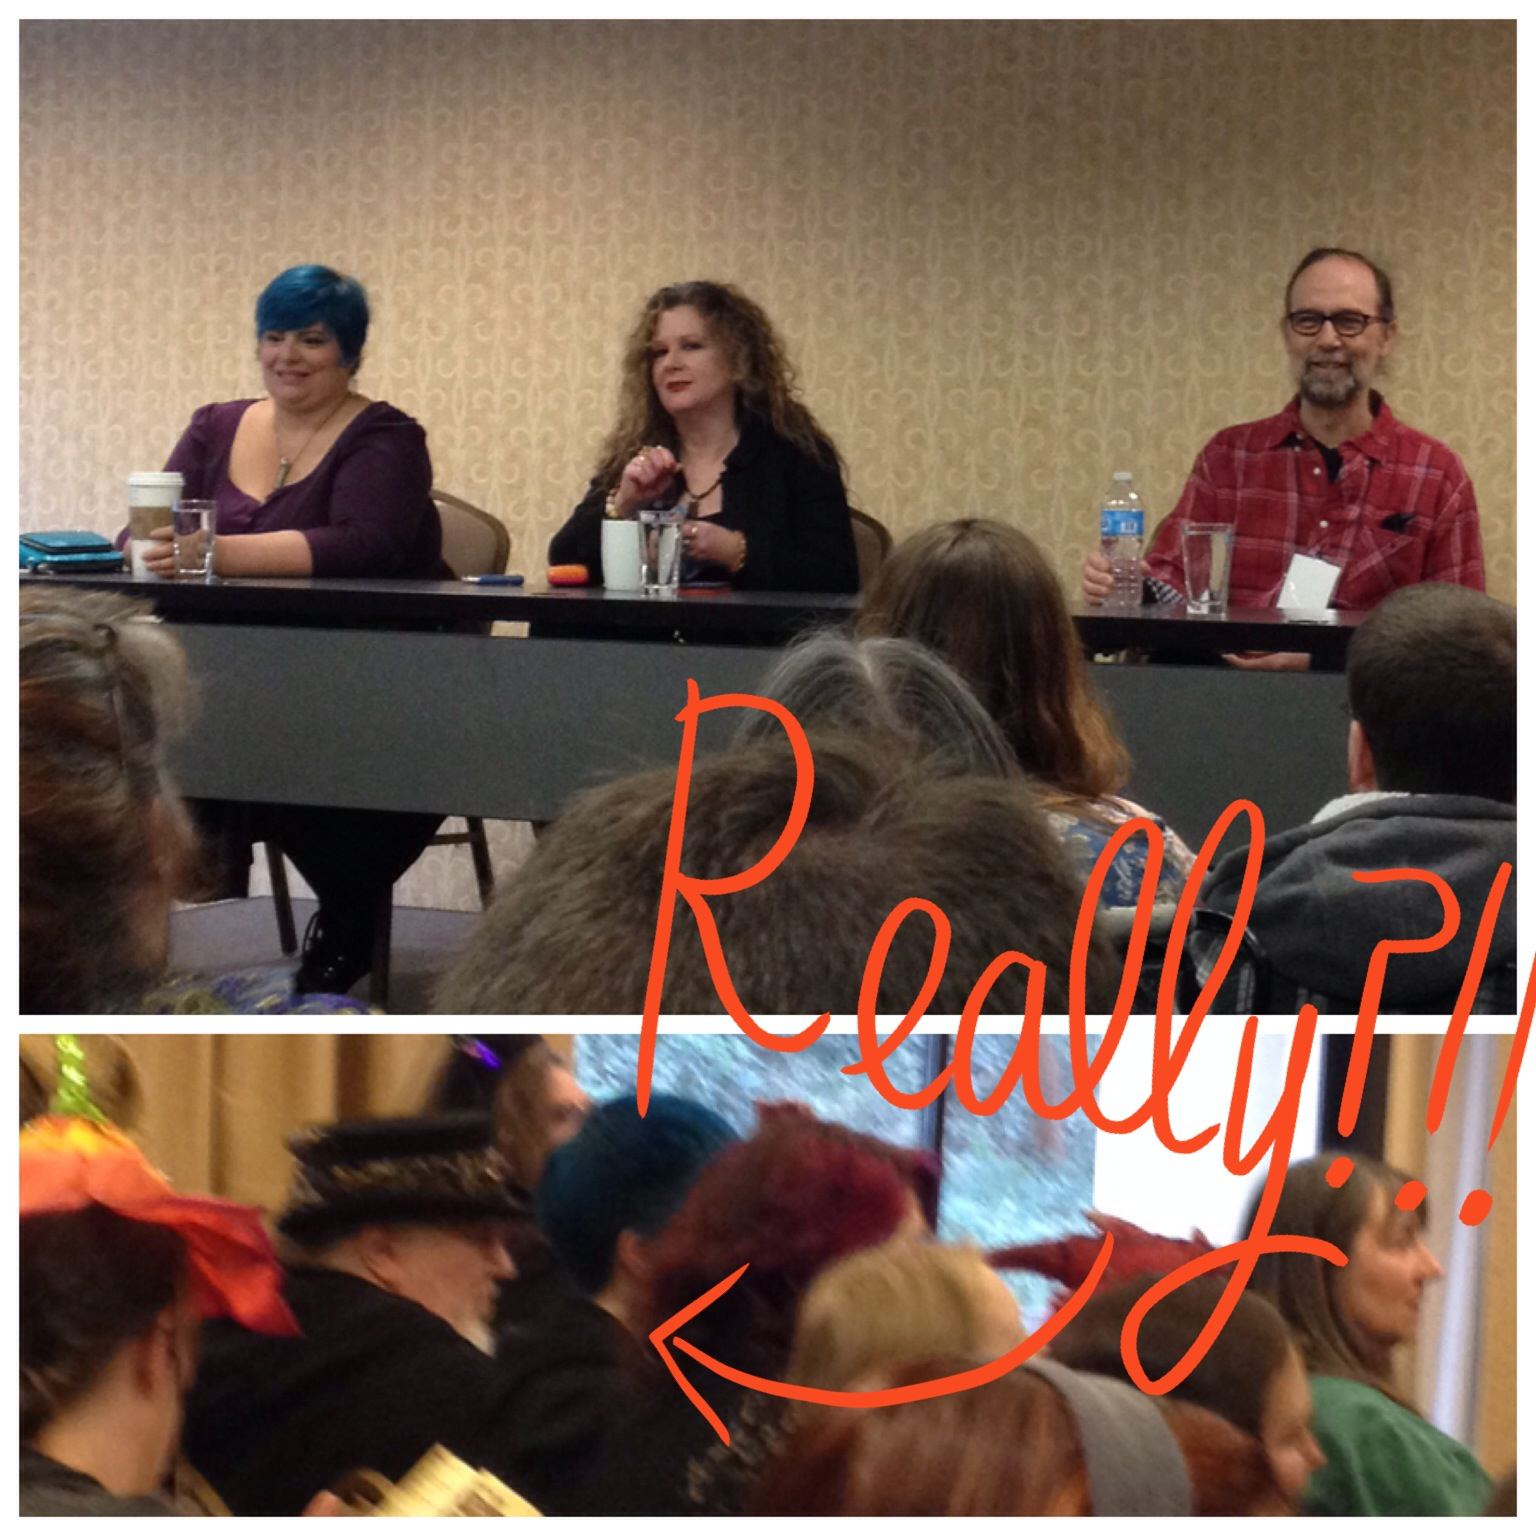 "Holly Black, Lauren K Hamilton and Charles deLint speaking about ""Why Are Strong Women In Fantasy Still A Surprise?""  AND LOOK WHO ELSE WAS THERE WATCHING."